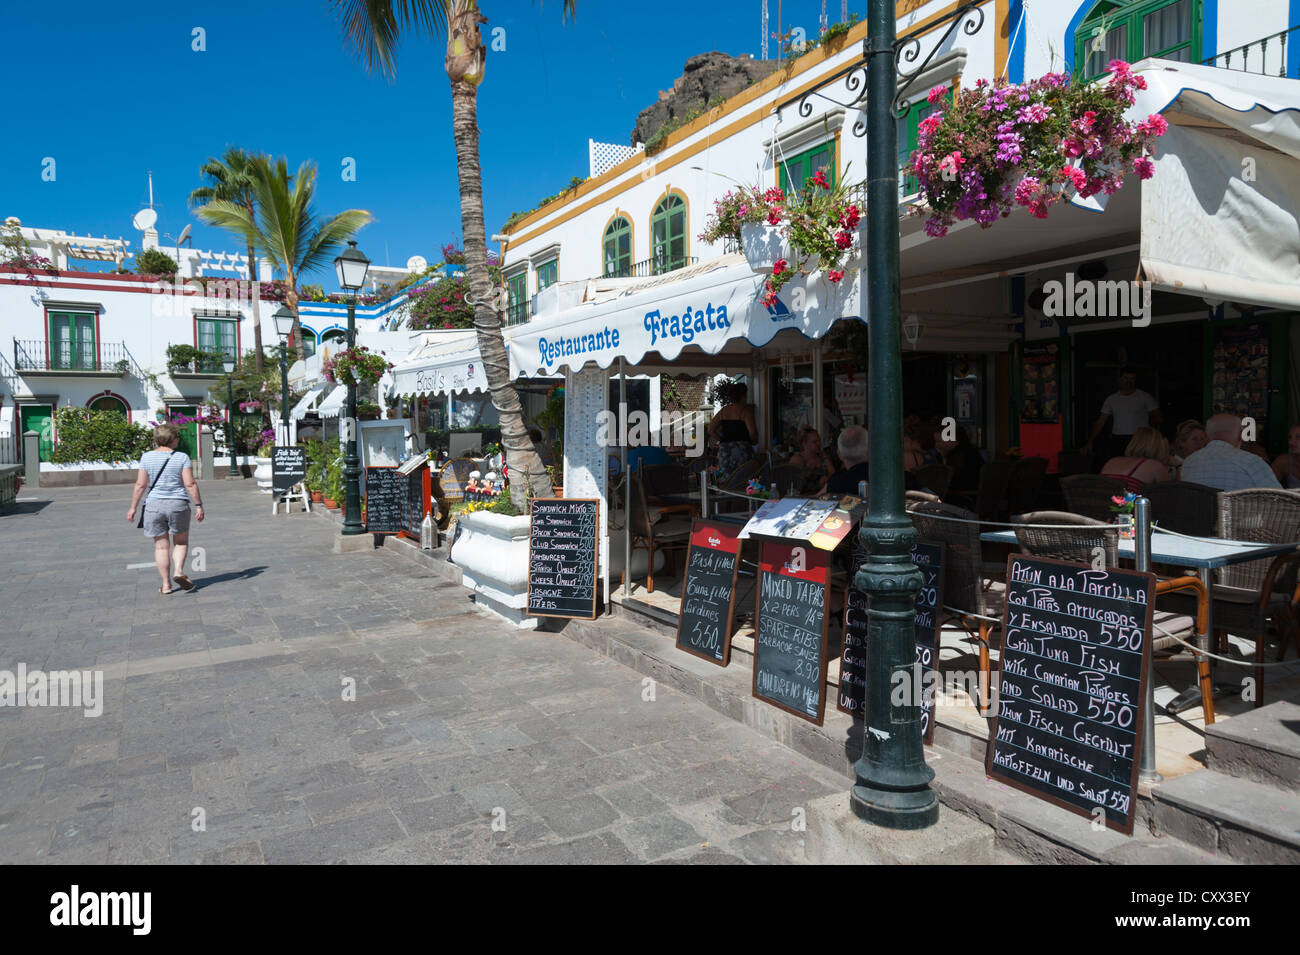 Restaurants and cafes on the harbour front at Puerto Mogan Gran Canaria Canary Islands Spain with menus outside - Stock Image